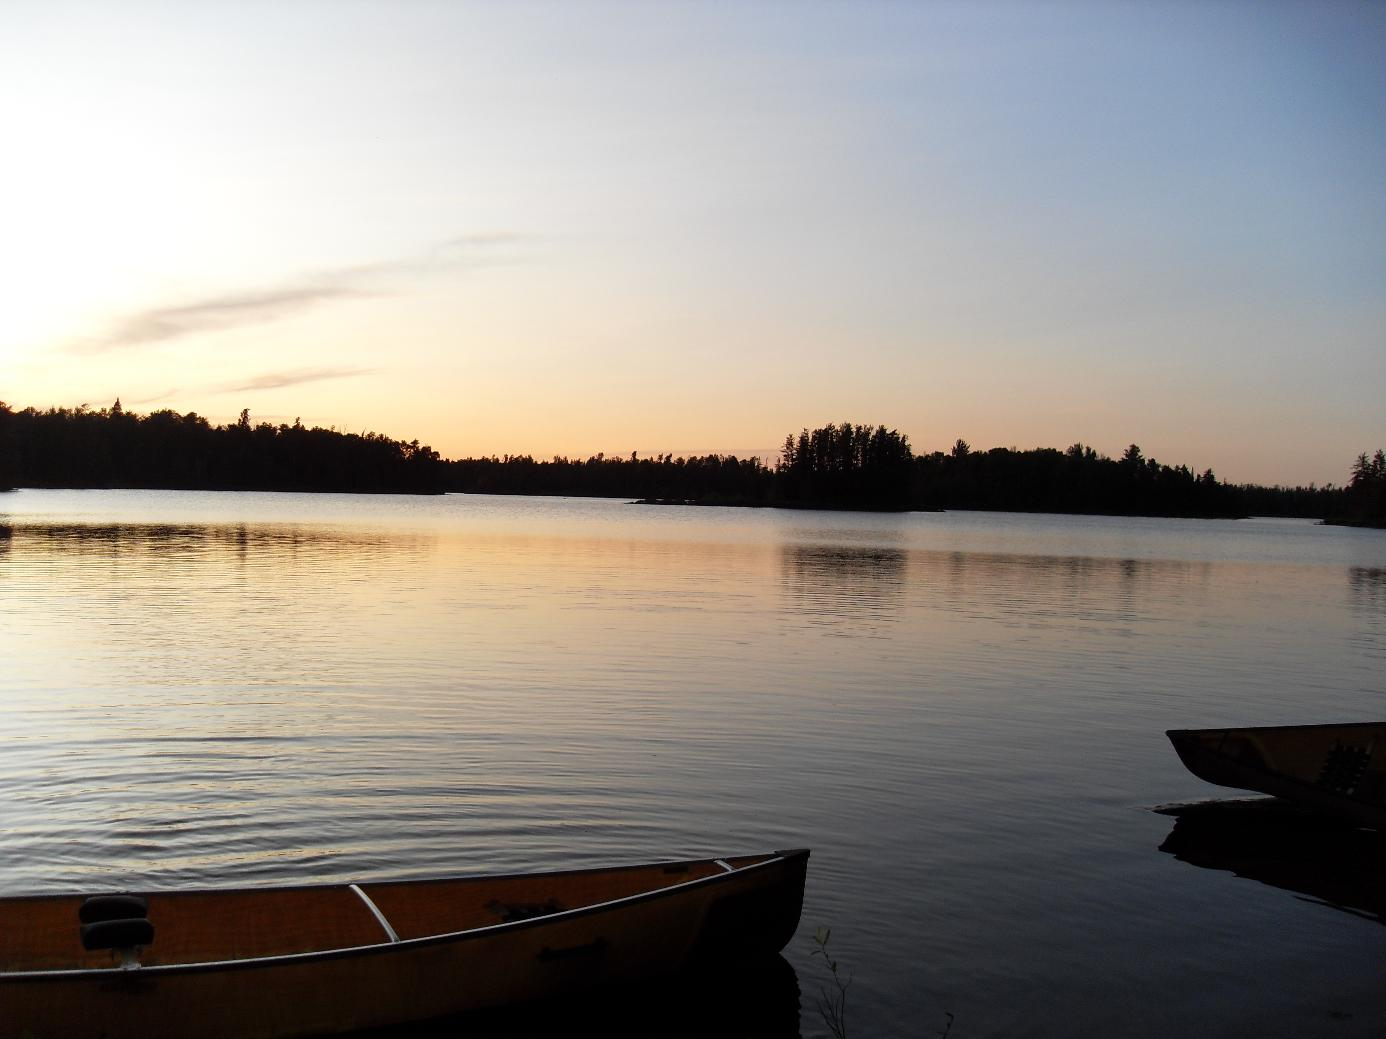 camp lake chatrooms Lake of the woods: lebrons long bay camp, lake of the woods, sioux narrows, ontario - see 27 traveler reviews, 39 candid photos, and great deals for ontario, canada, at tripadvisor.